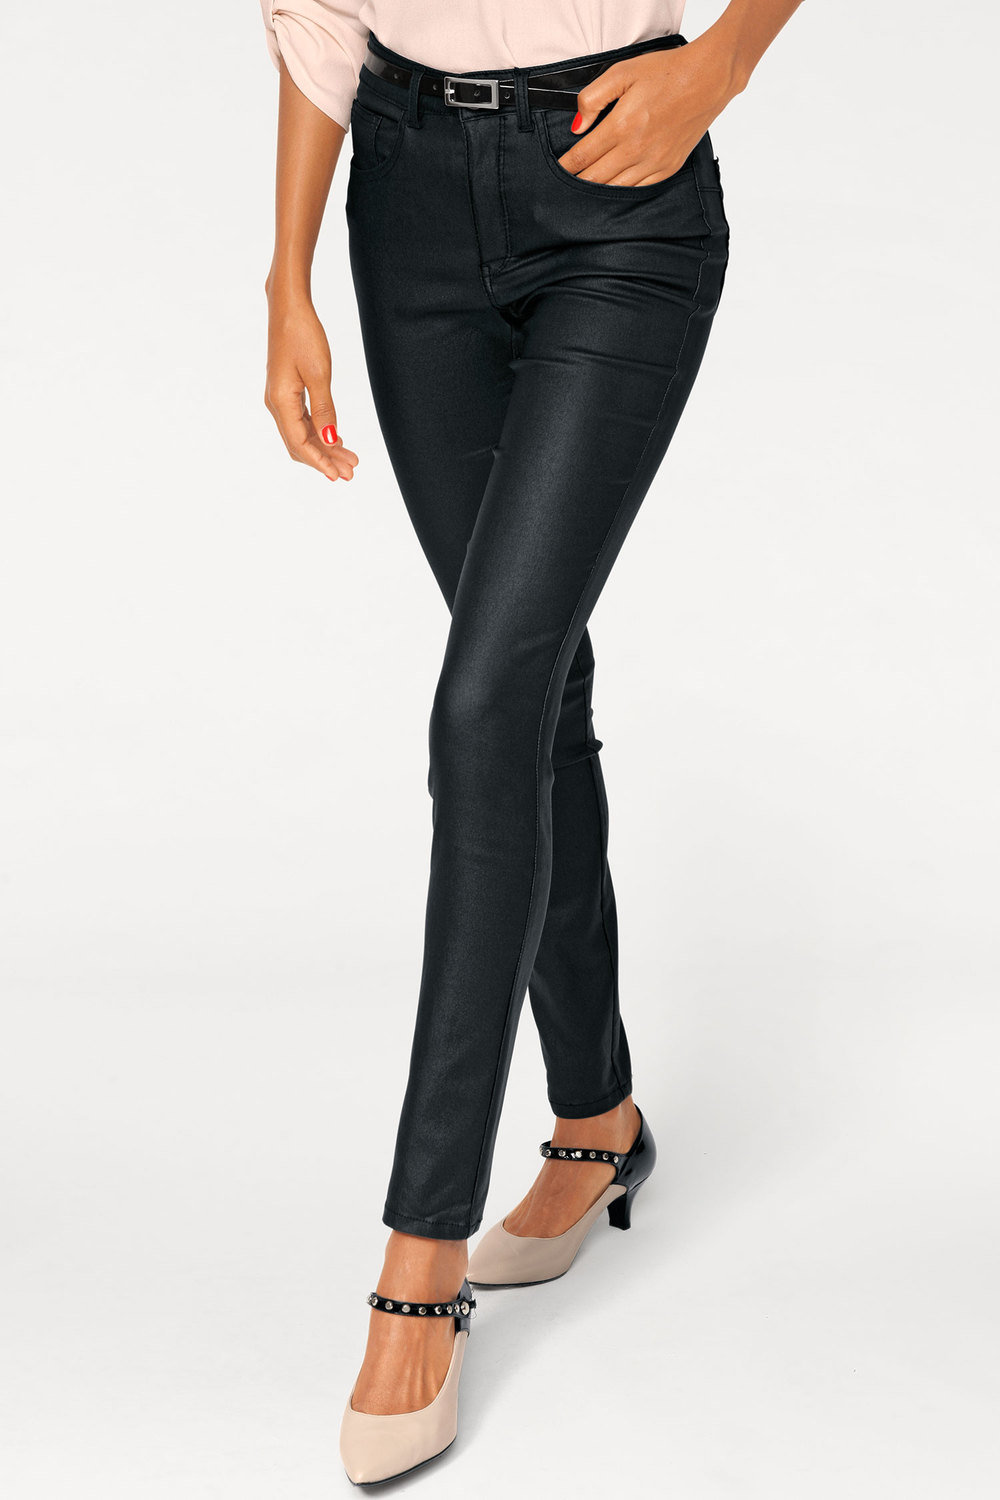 49cf5c1f5698c Heine Faux Leather Leggings Online | Shop EziBuy